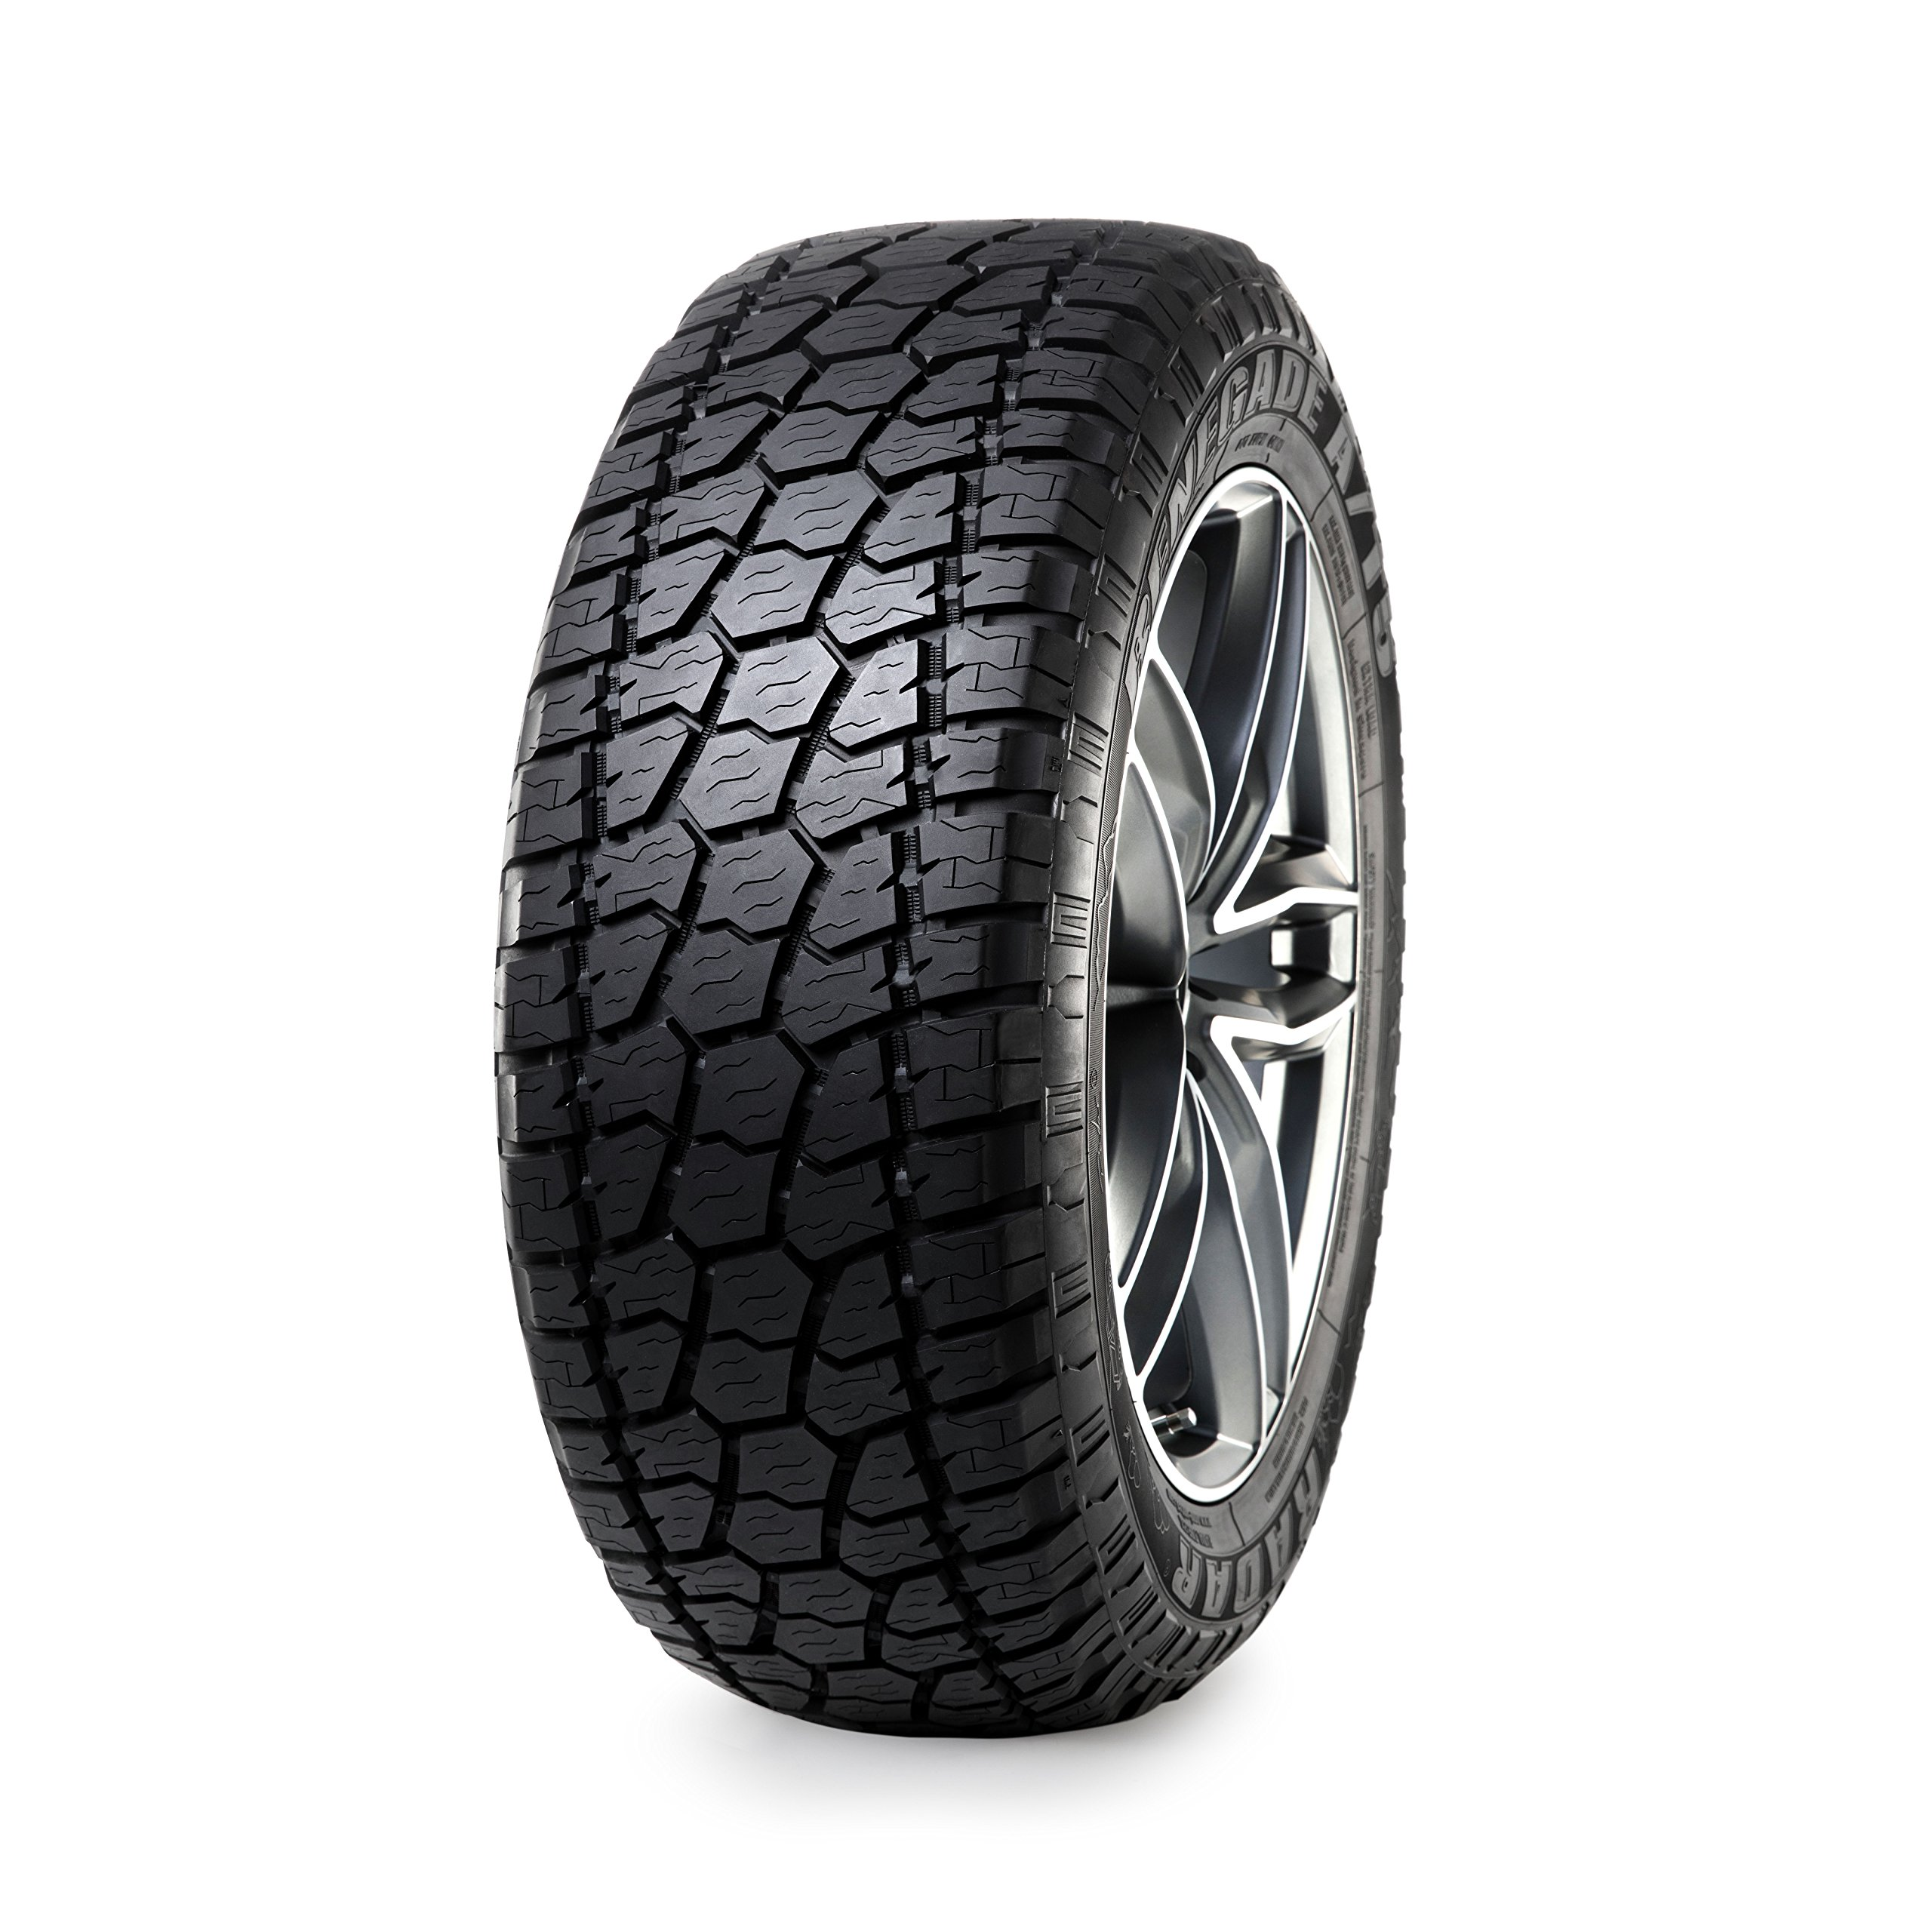 Radar Renegade A/T5 All-Terrain Radial Tire - 265/50R20 112V by Radar (Image #3)